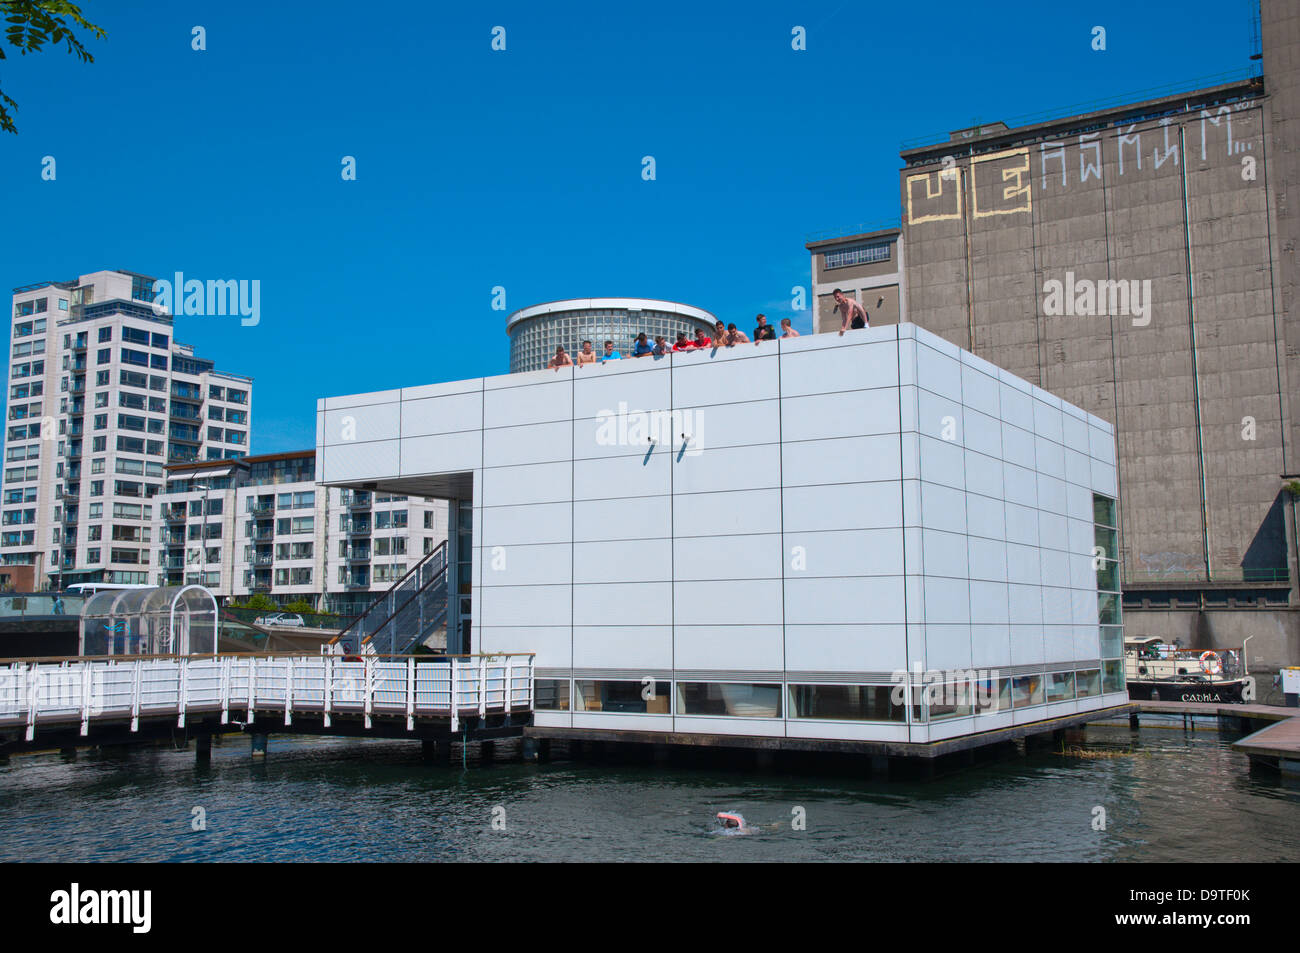 Waterways Visitor Centre in Grand Canal Docks in Docklands former harbour area central Dublin Ireland Europe - Stock Image